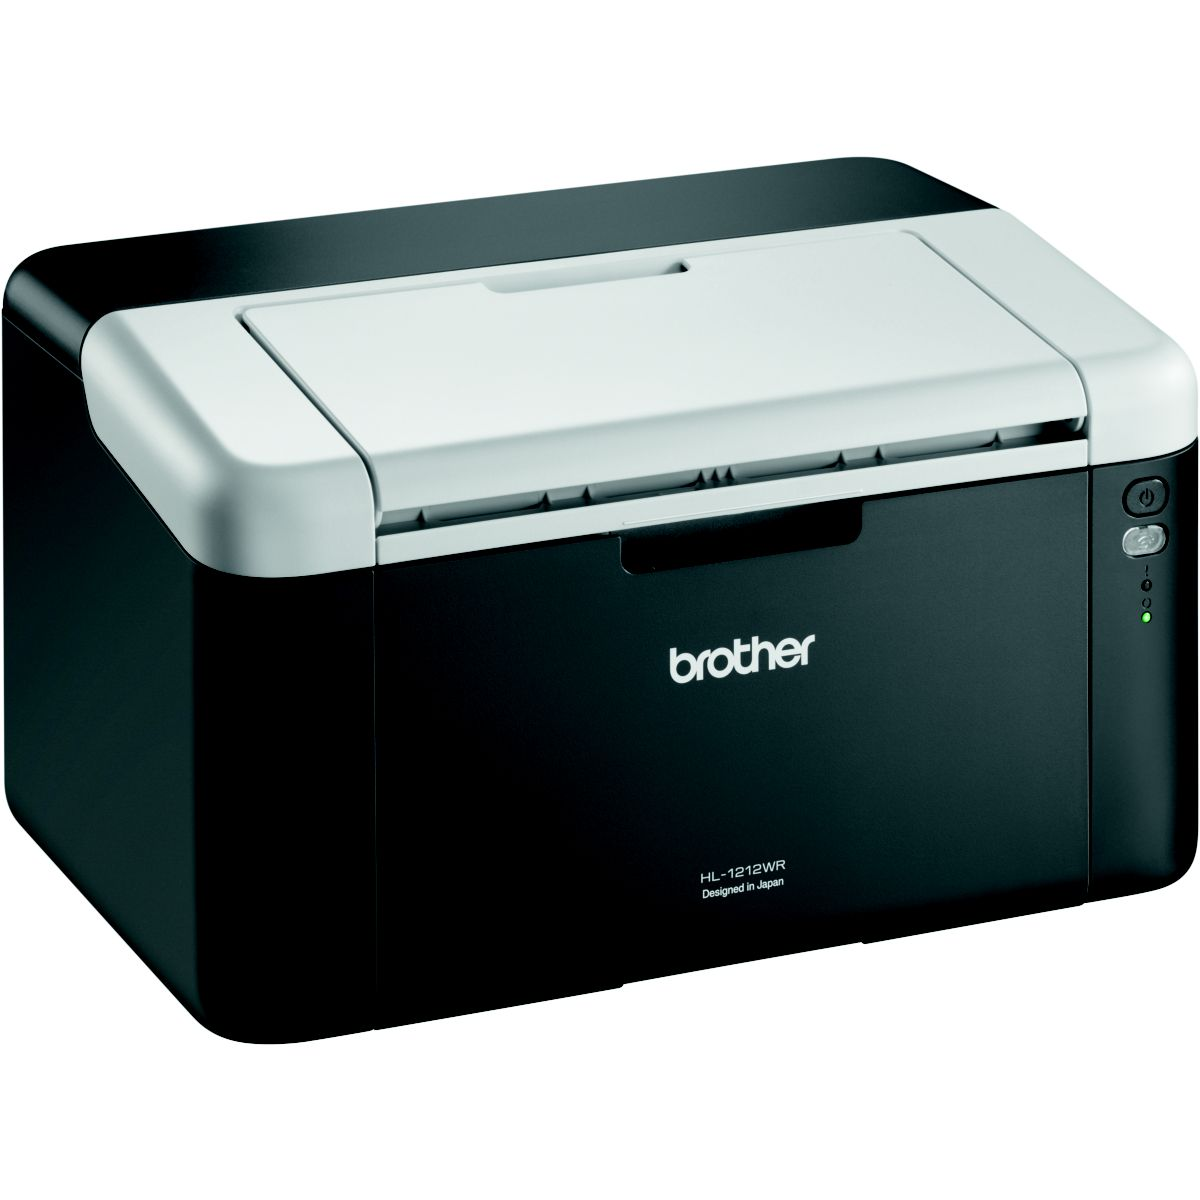 Imprimante monofonction laser monochrome brother hl 1212w (photo)